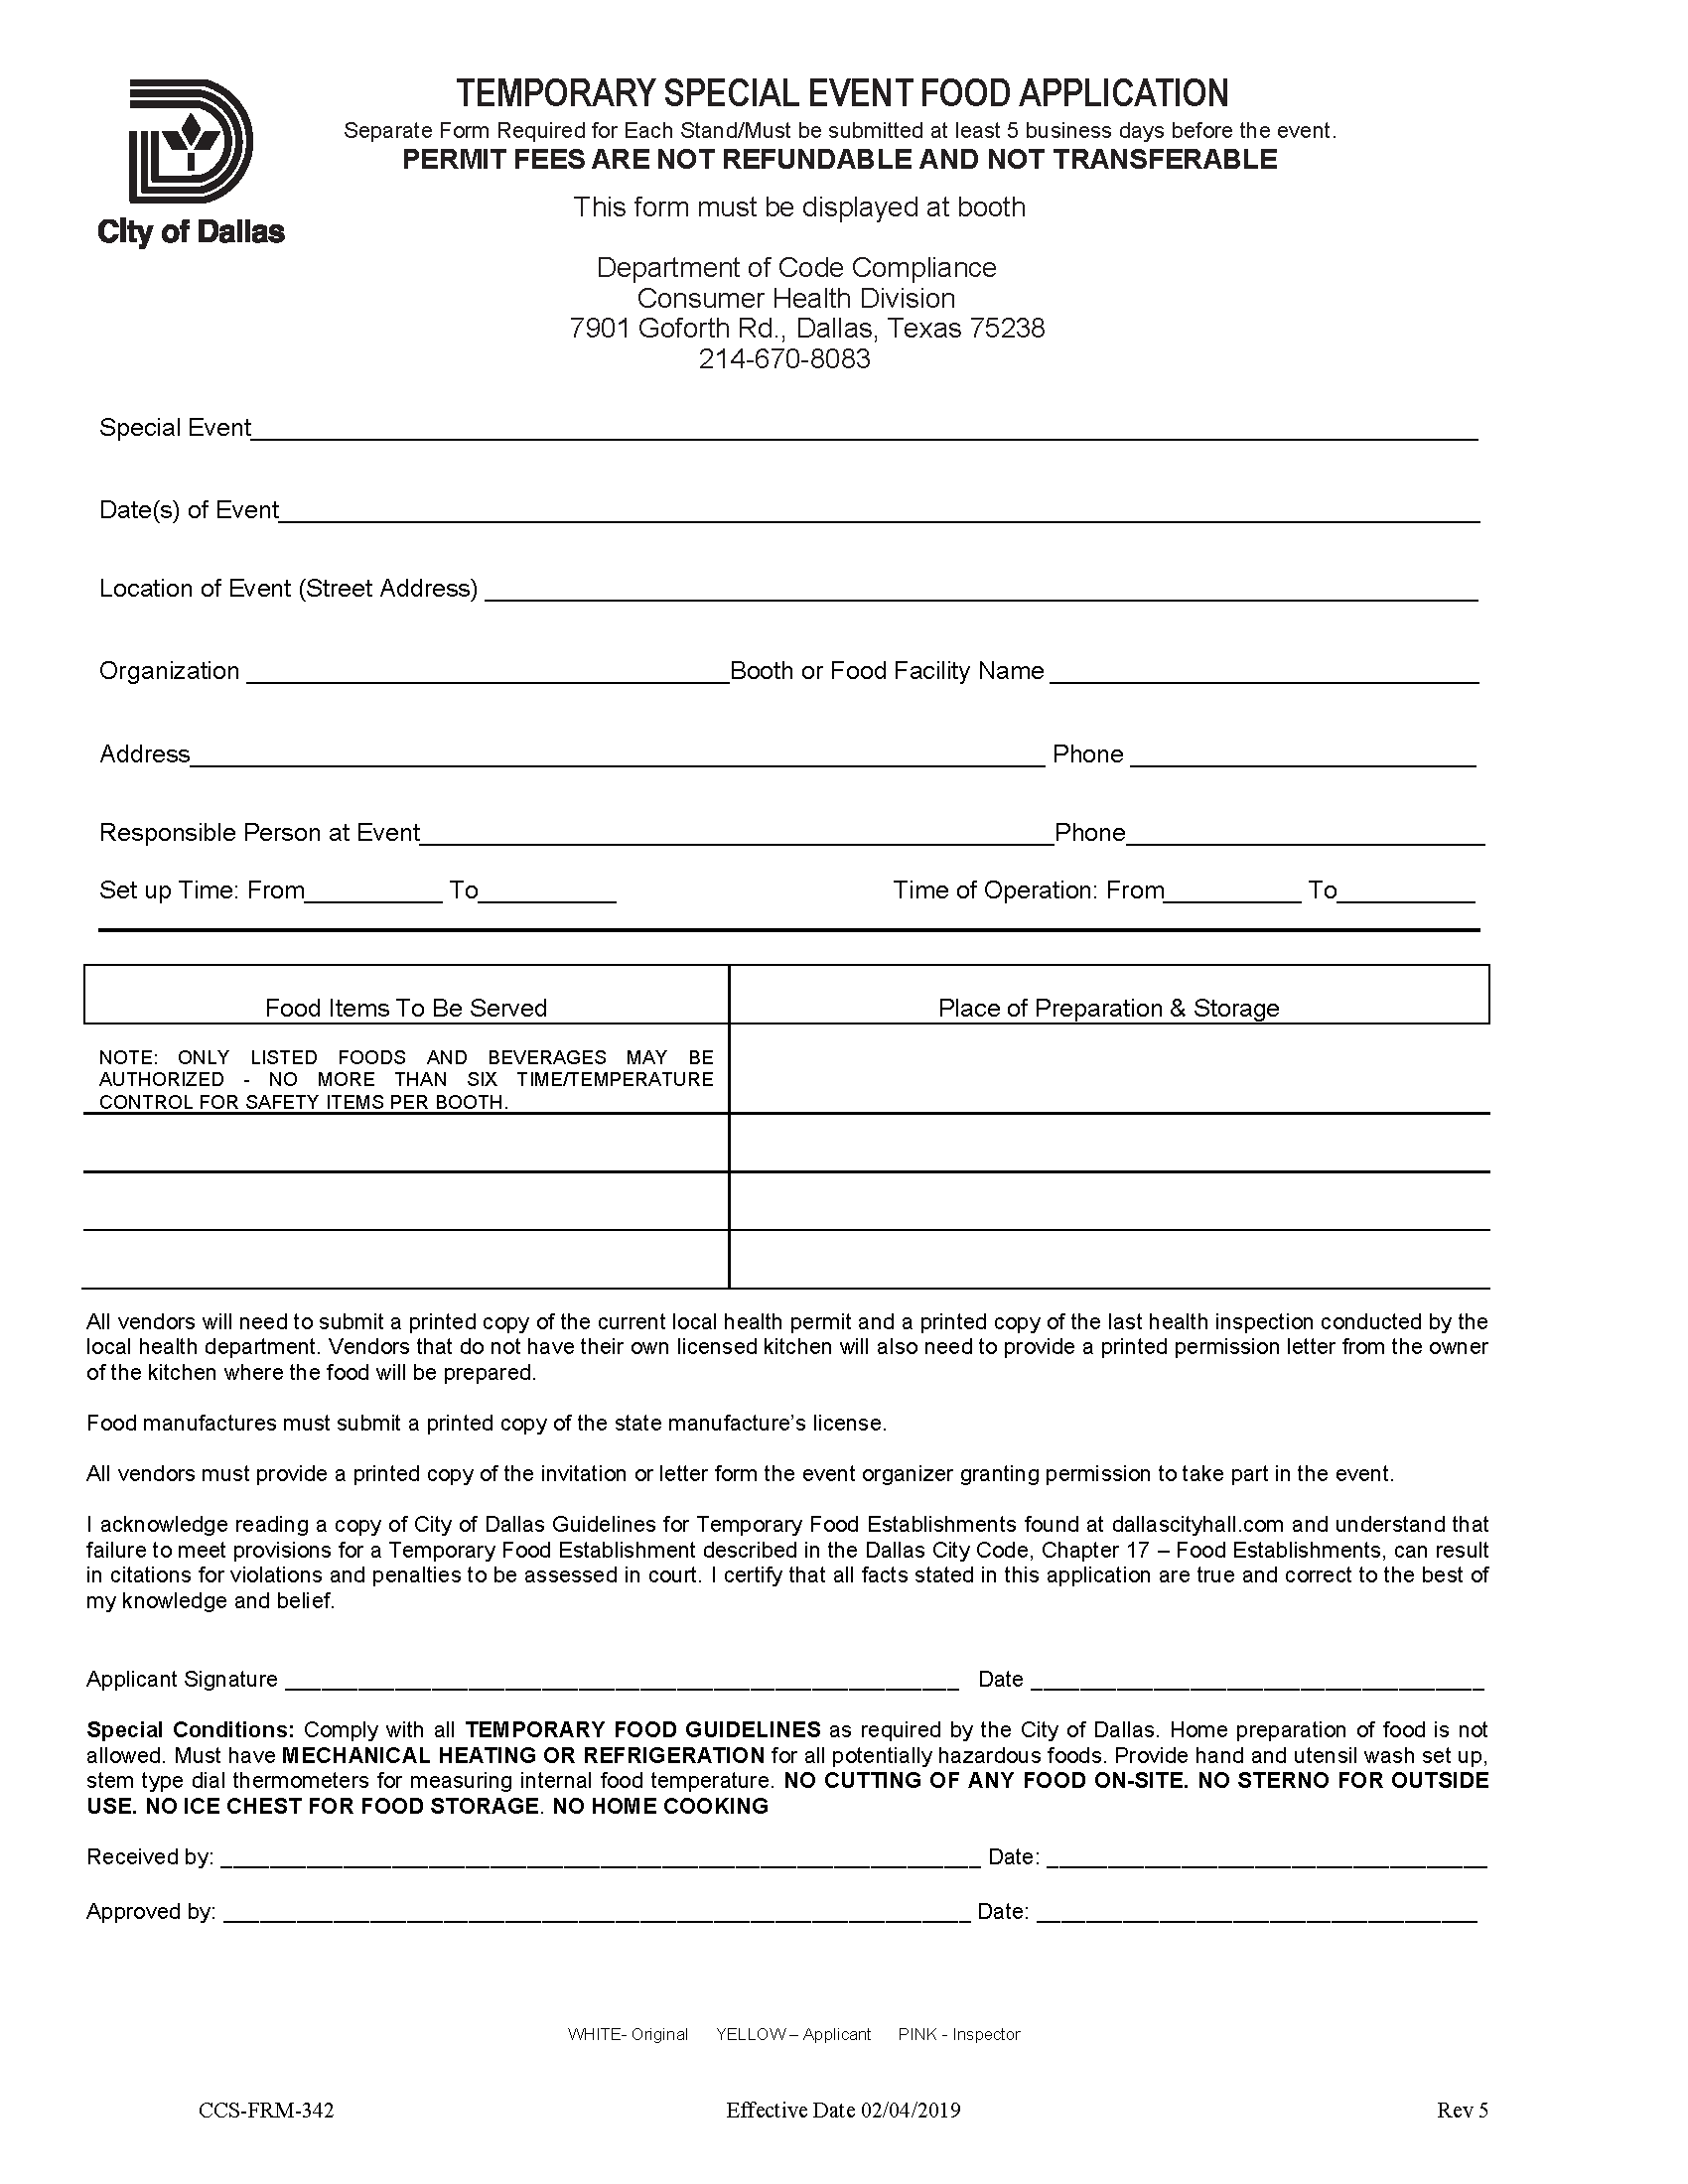 CCS-FRM-342 Temporary Food Establishment Permit Request (Pre-printed).png